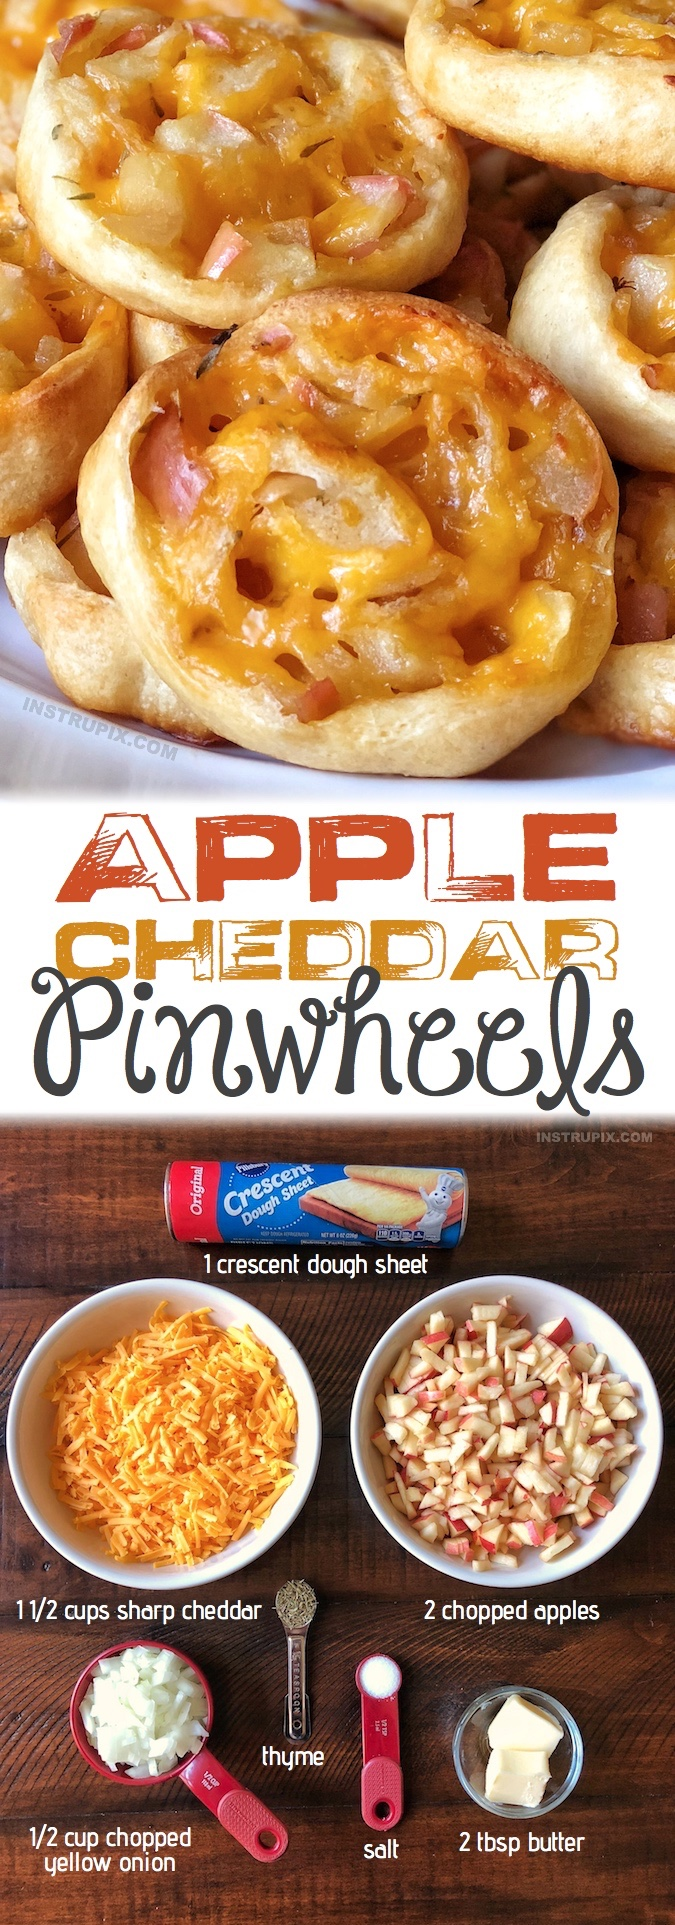 Apple Cheddar Pinwheels Recipe | Simple appetizer and snack recipe idea that is always a hit at parties! The combination of apples and cheddar is delicious! They taste like sweet stuffing. They are a yummy snack too! Instrupix.com